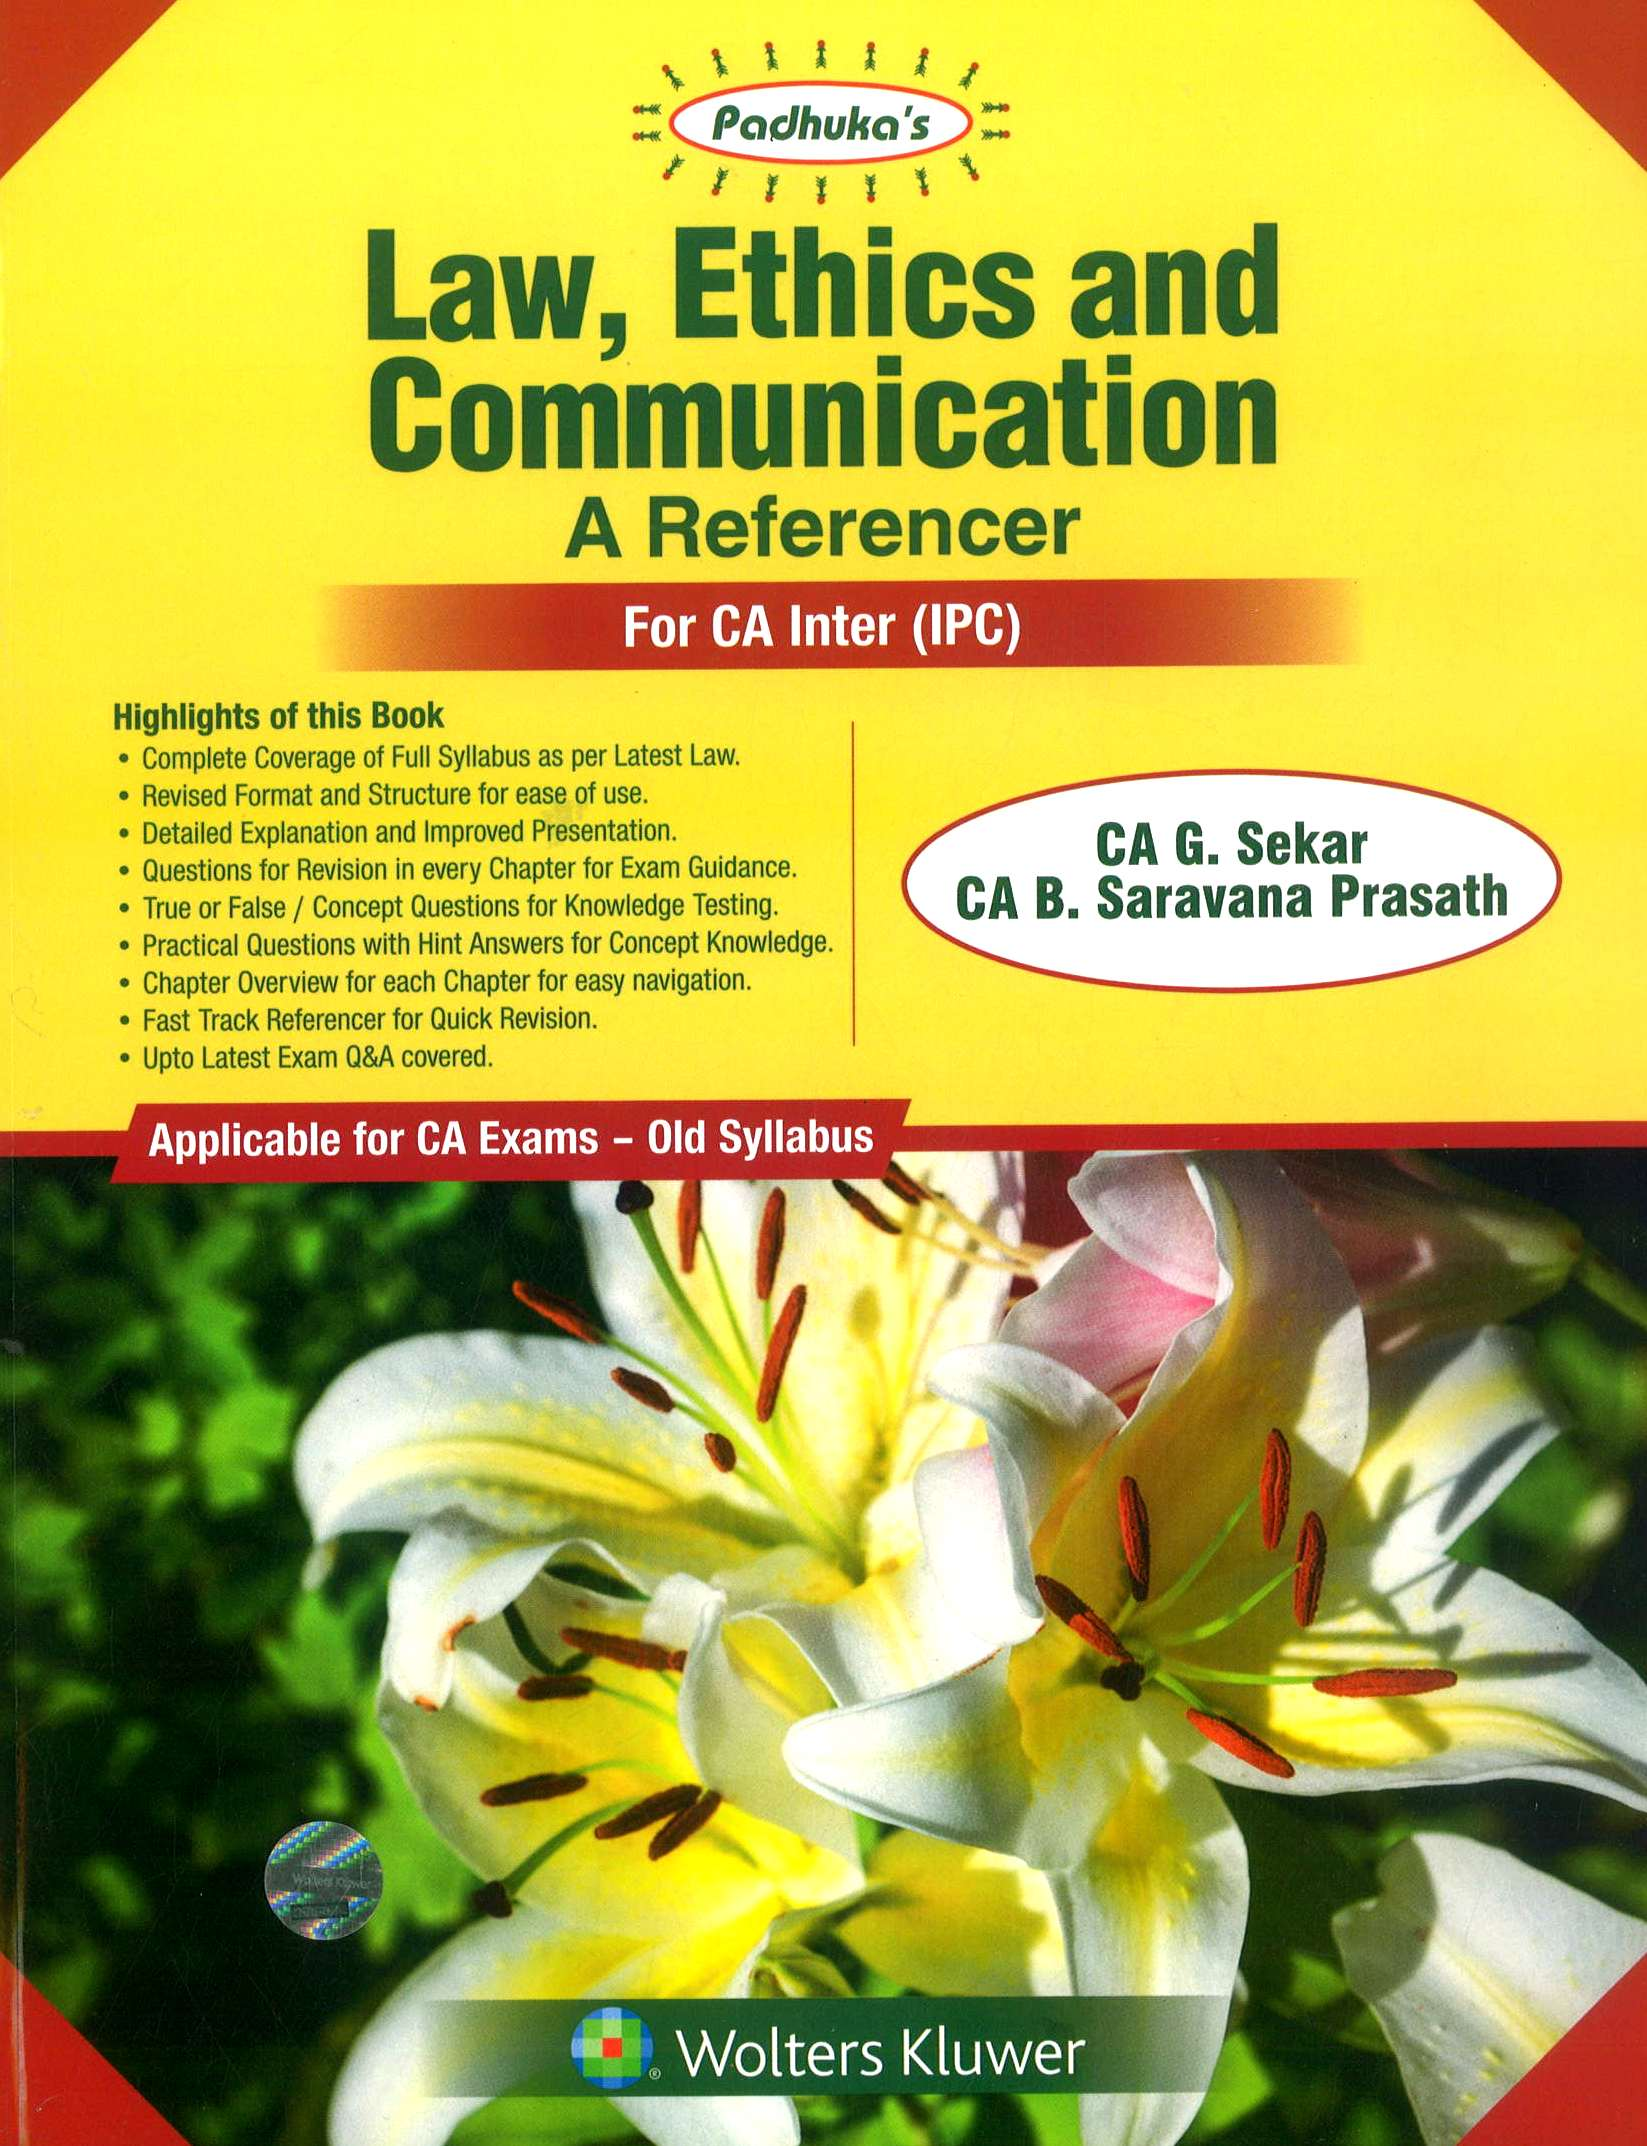 Padhuka's Law, Ethics and Communication A Reference for CA Inter (IPC) by CA G. Sekar and CA B. Saravana Prasath (Wolters Kluwer Publication) Edition 2018 for Nov 2018 Exam